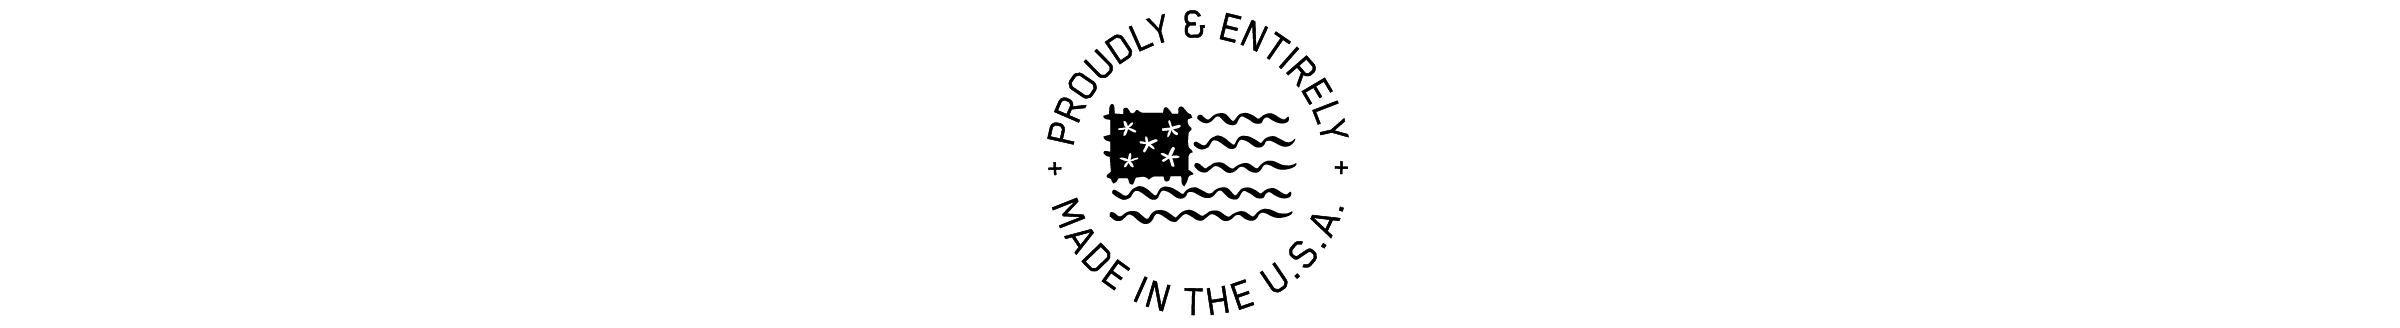 made in usa small-01.png